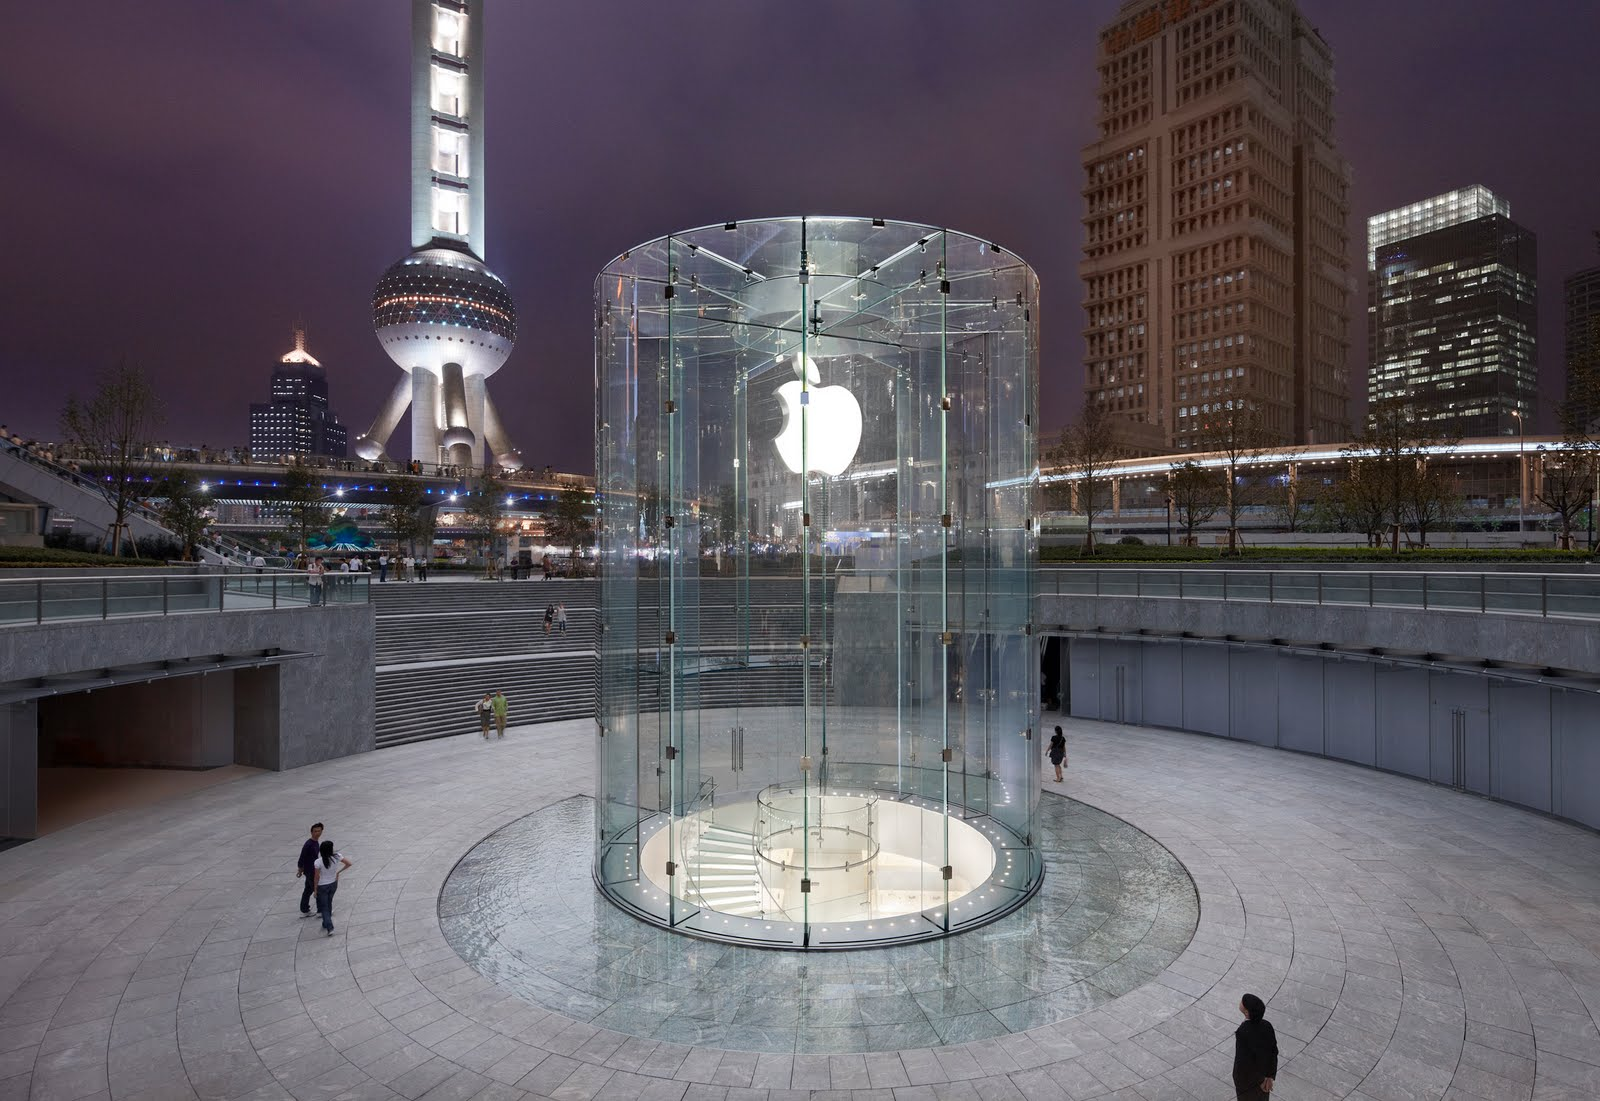 According to a report by 9to5mac Apple had planned a few retails stores in Chongqing region as well